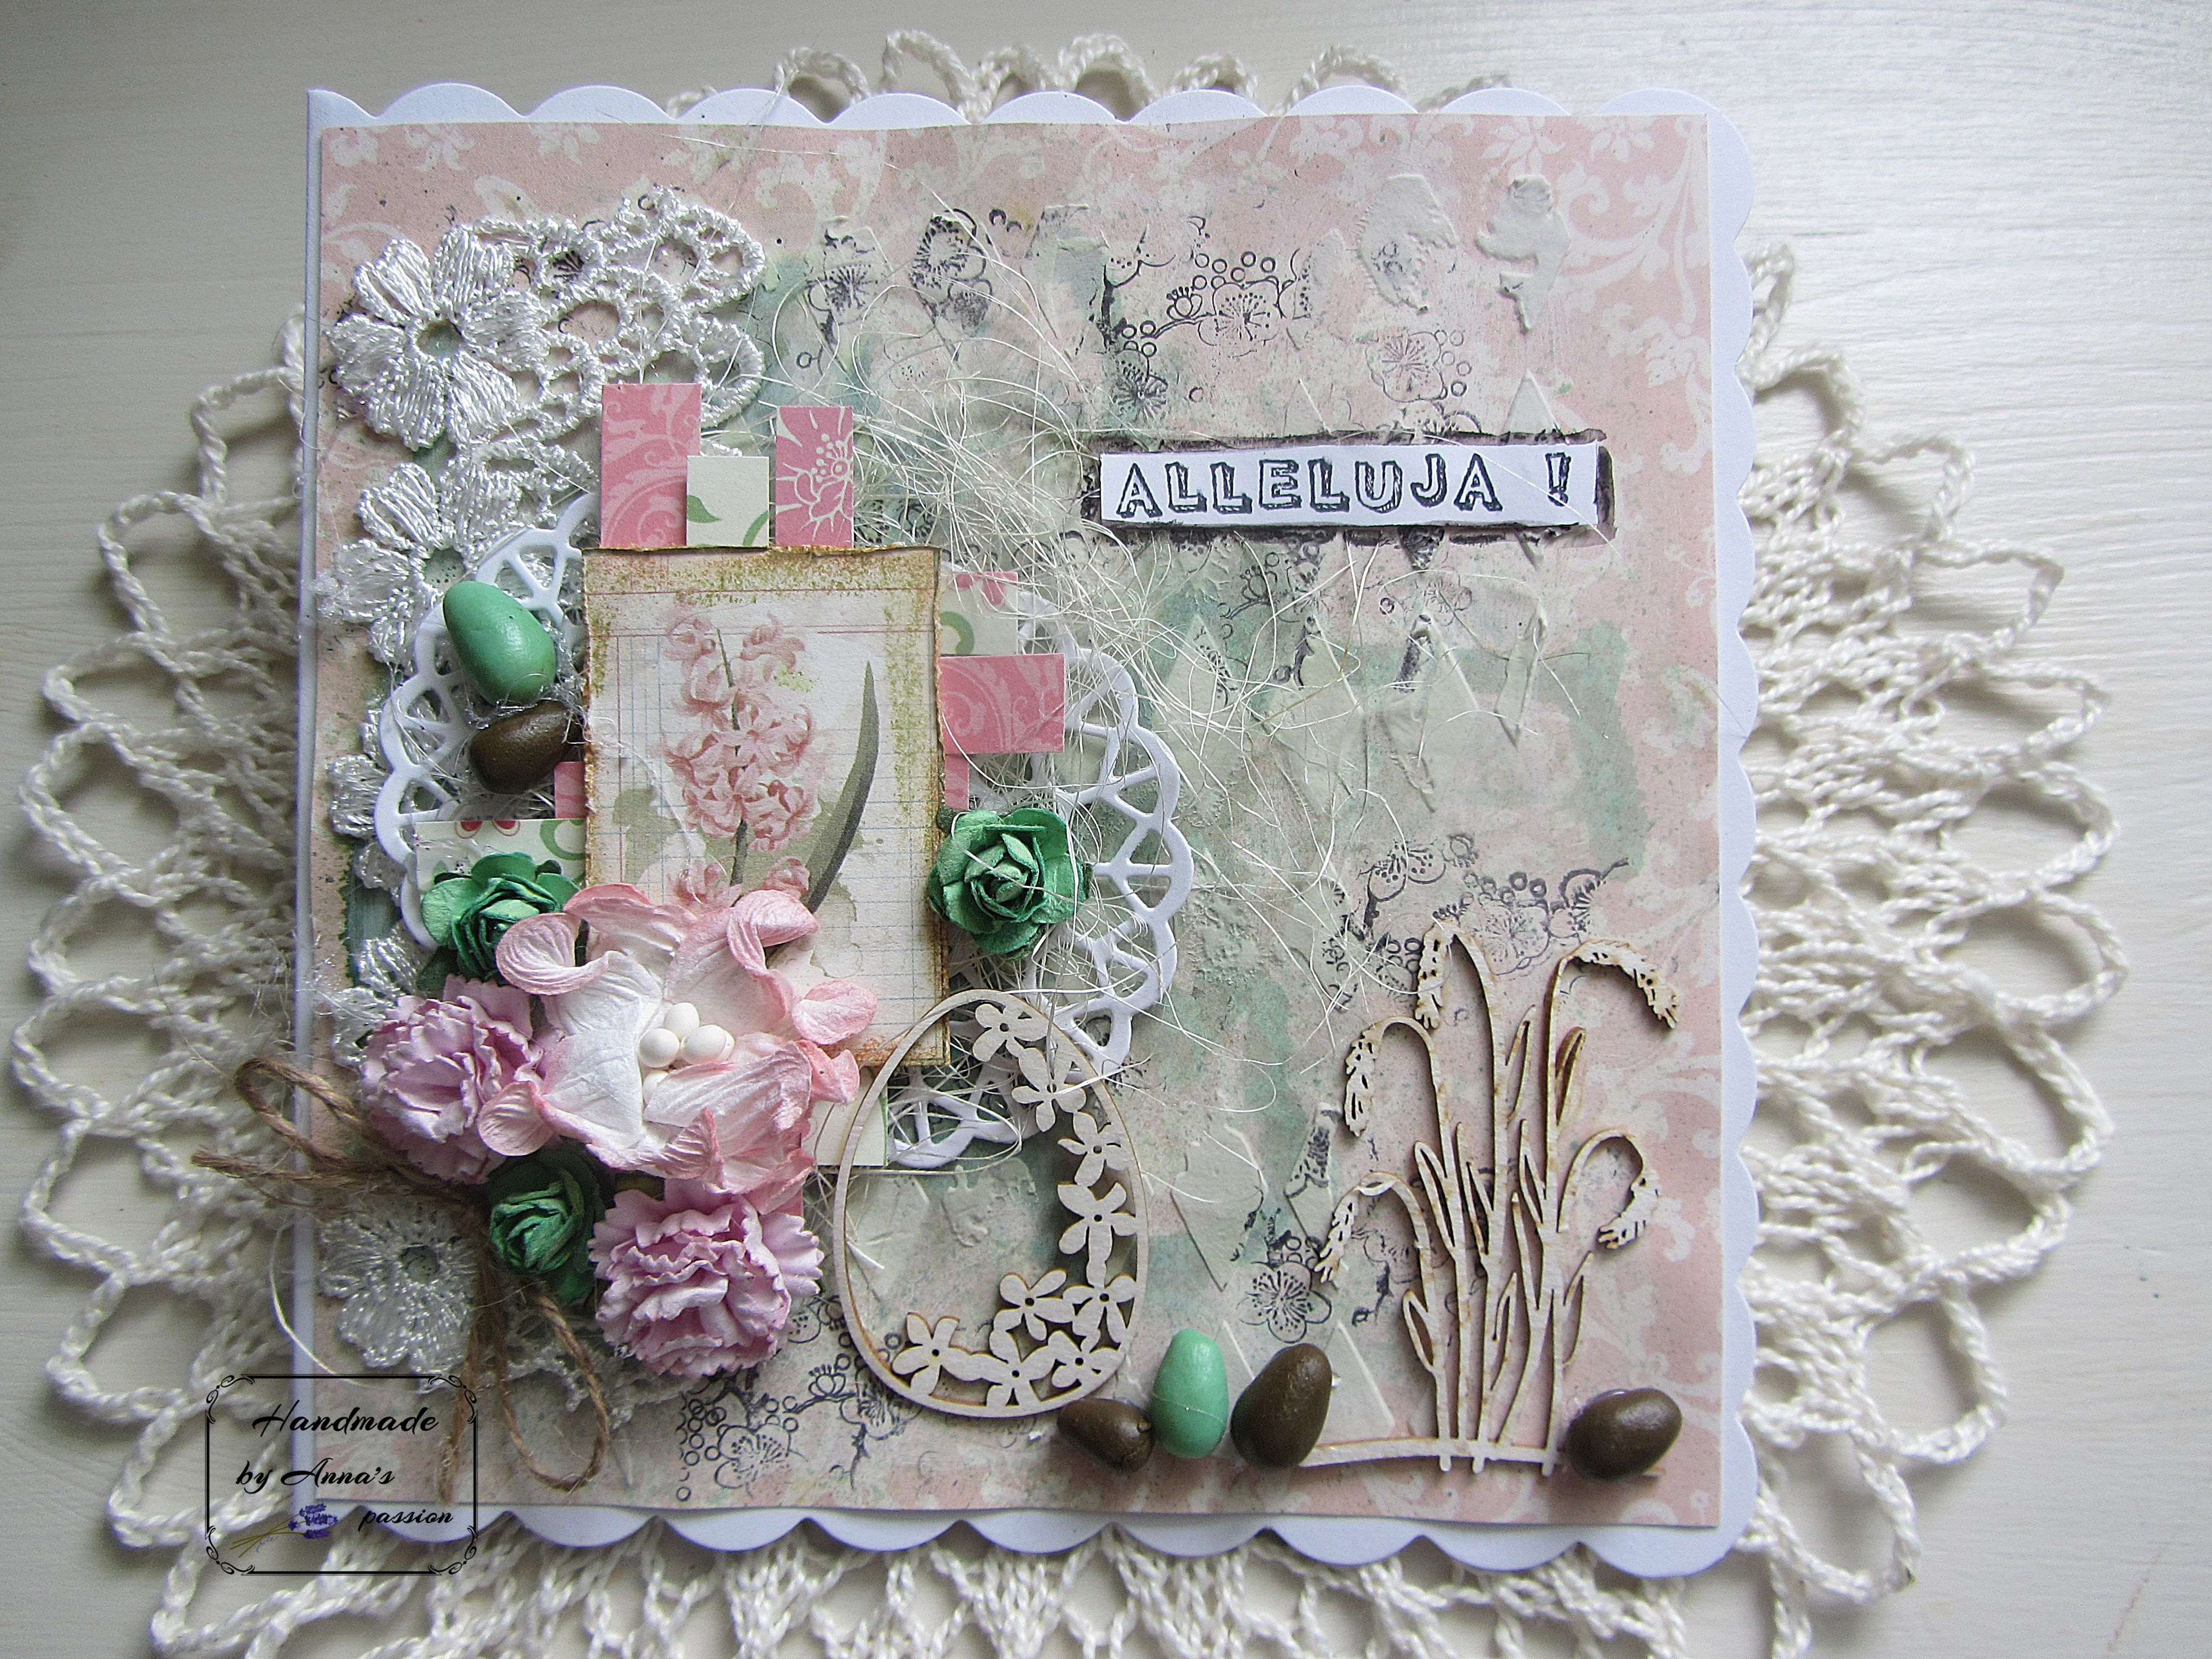 Mixed Media Easter card Mediowa kartka Wielkanocna  #mixedmedia #mixedmediaart #card #handmade #cardmaking #papermania #gesso #lindys #lindysstampgang #texturepaste #tcw #thecraftersworkshop #tcwstencillove #diecut #lace #tackyglue #bobunny #naturalsisal #paperstrips #paperflowers #fimo #eggs #ranger #archivalink #blossomstamp #scrapiniec #chipboards #ministampset